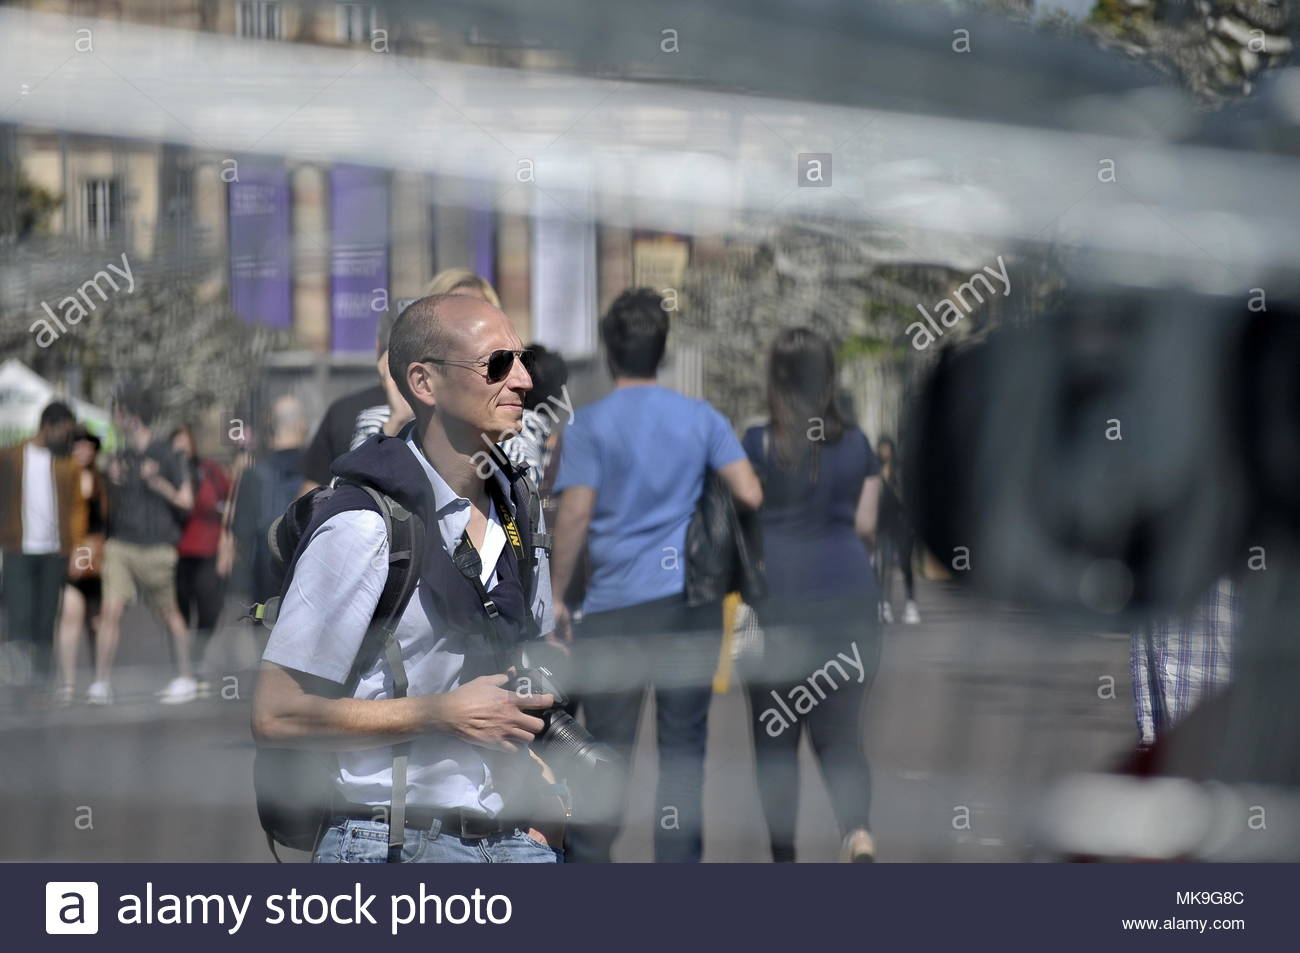 Walking people - Stock Image